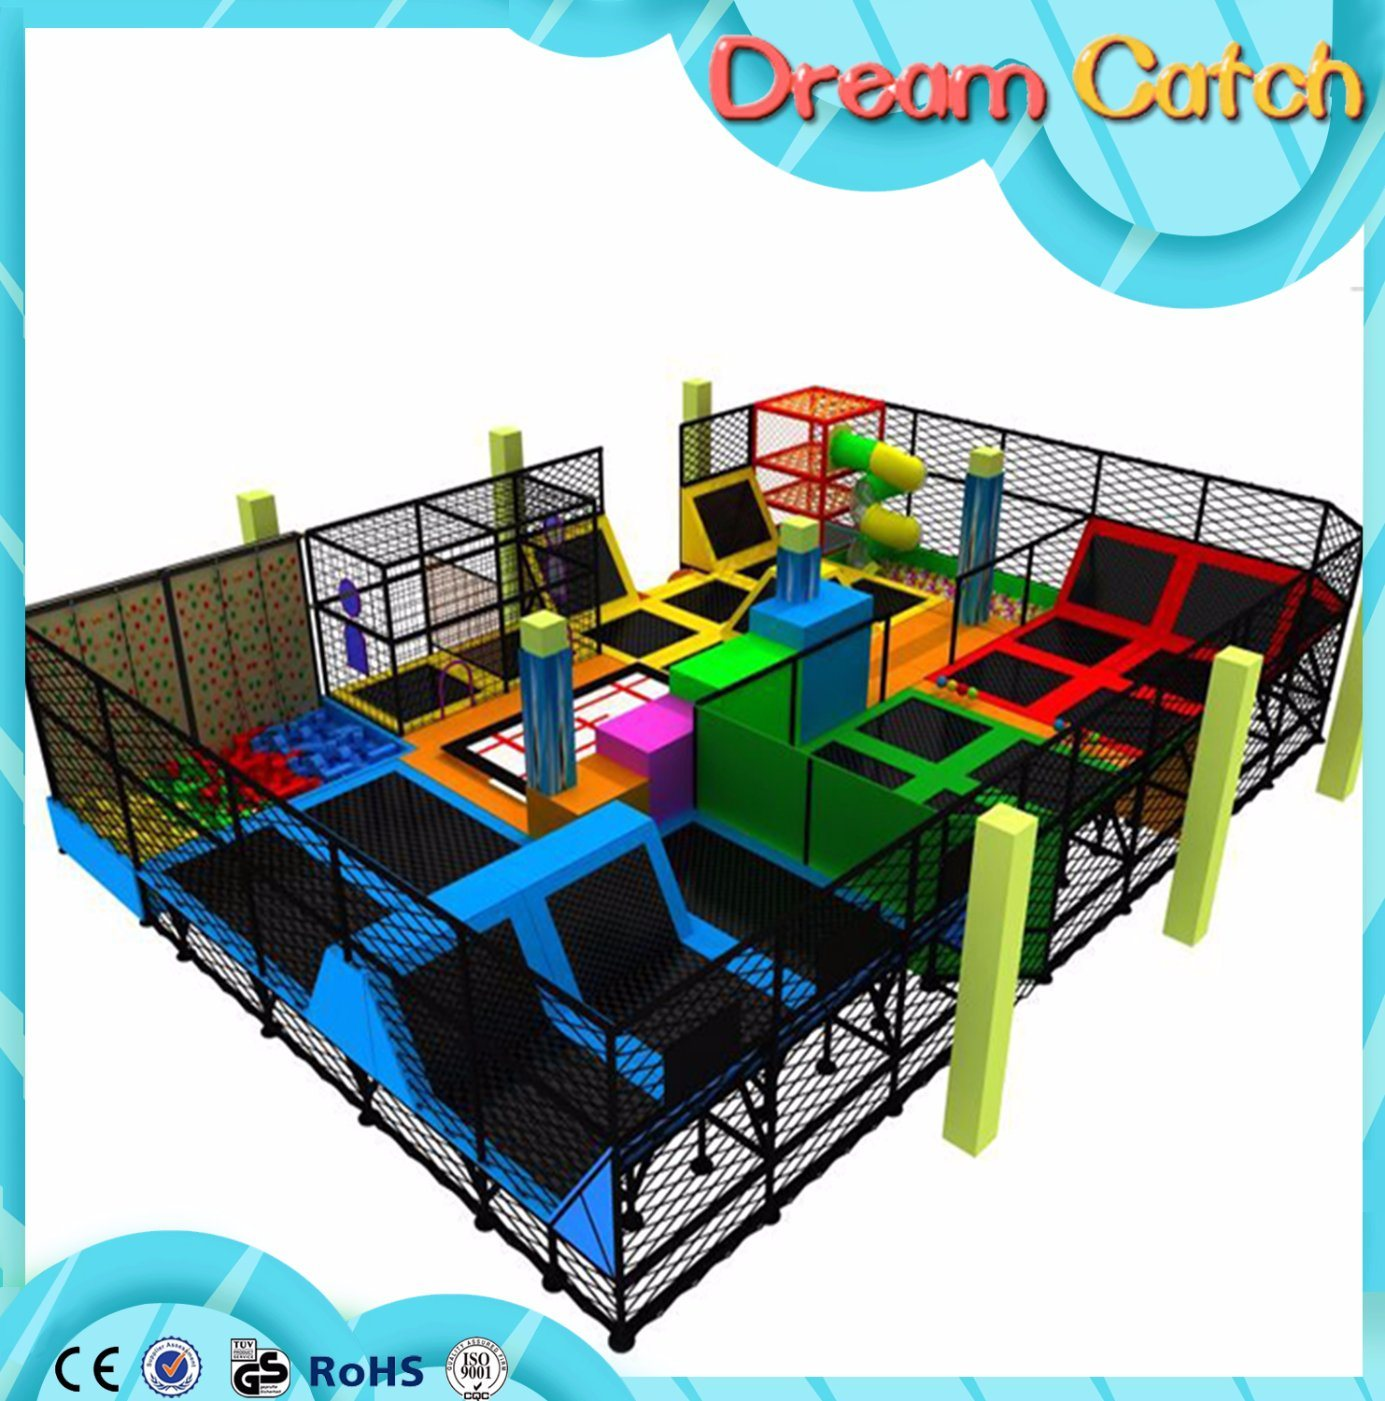 2017 Arrival New Children Plastic Indoor Trampoline Park in Factory Price